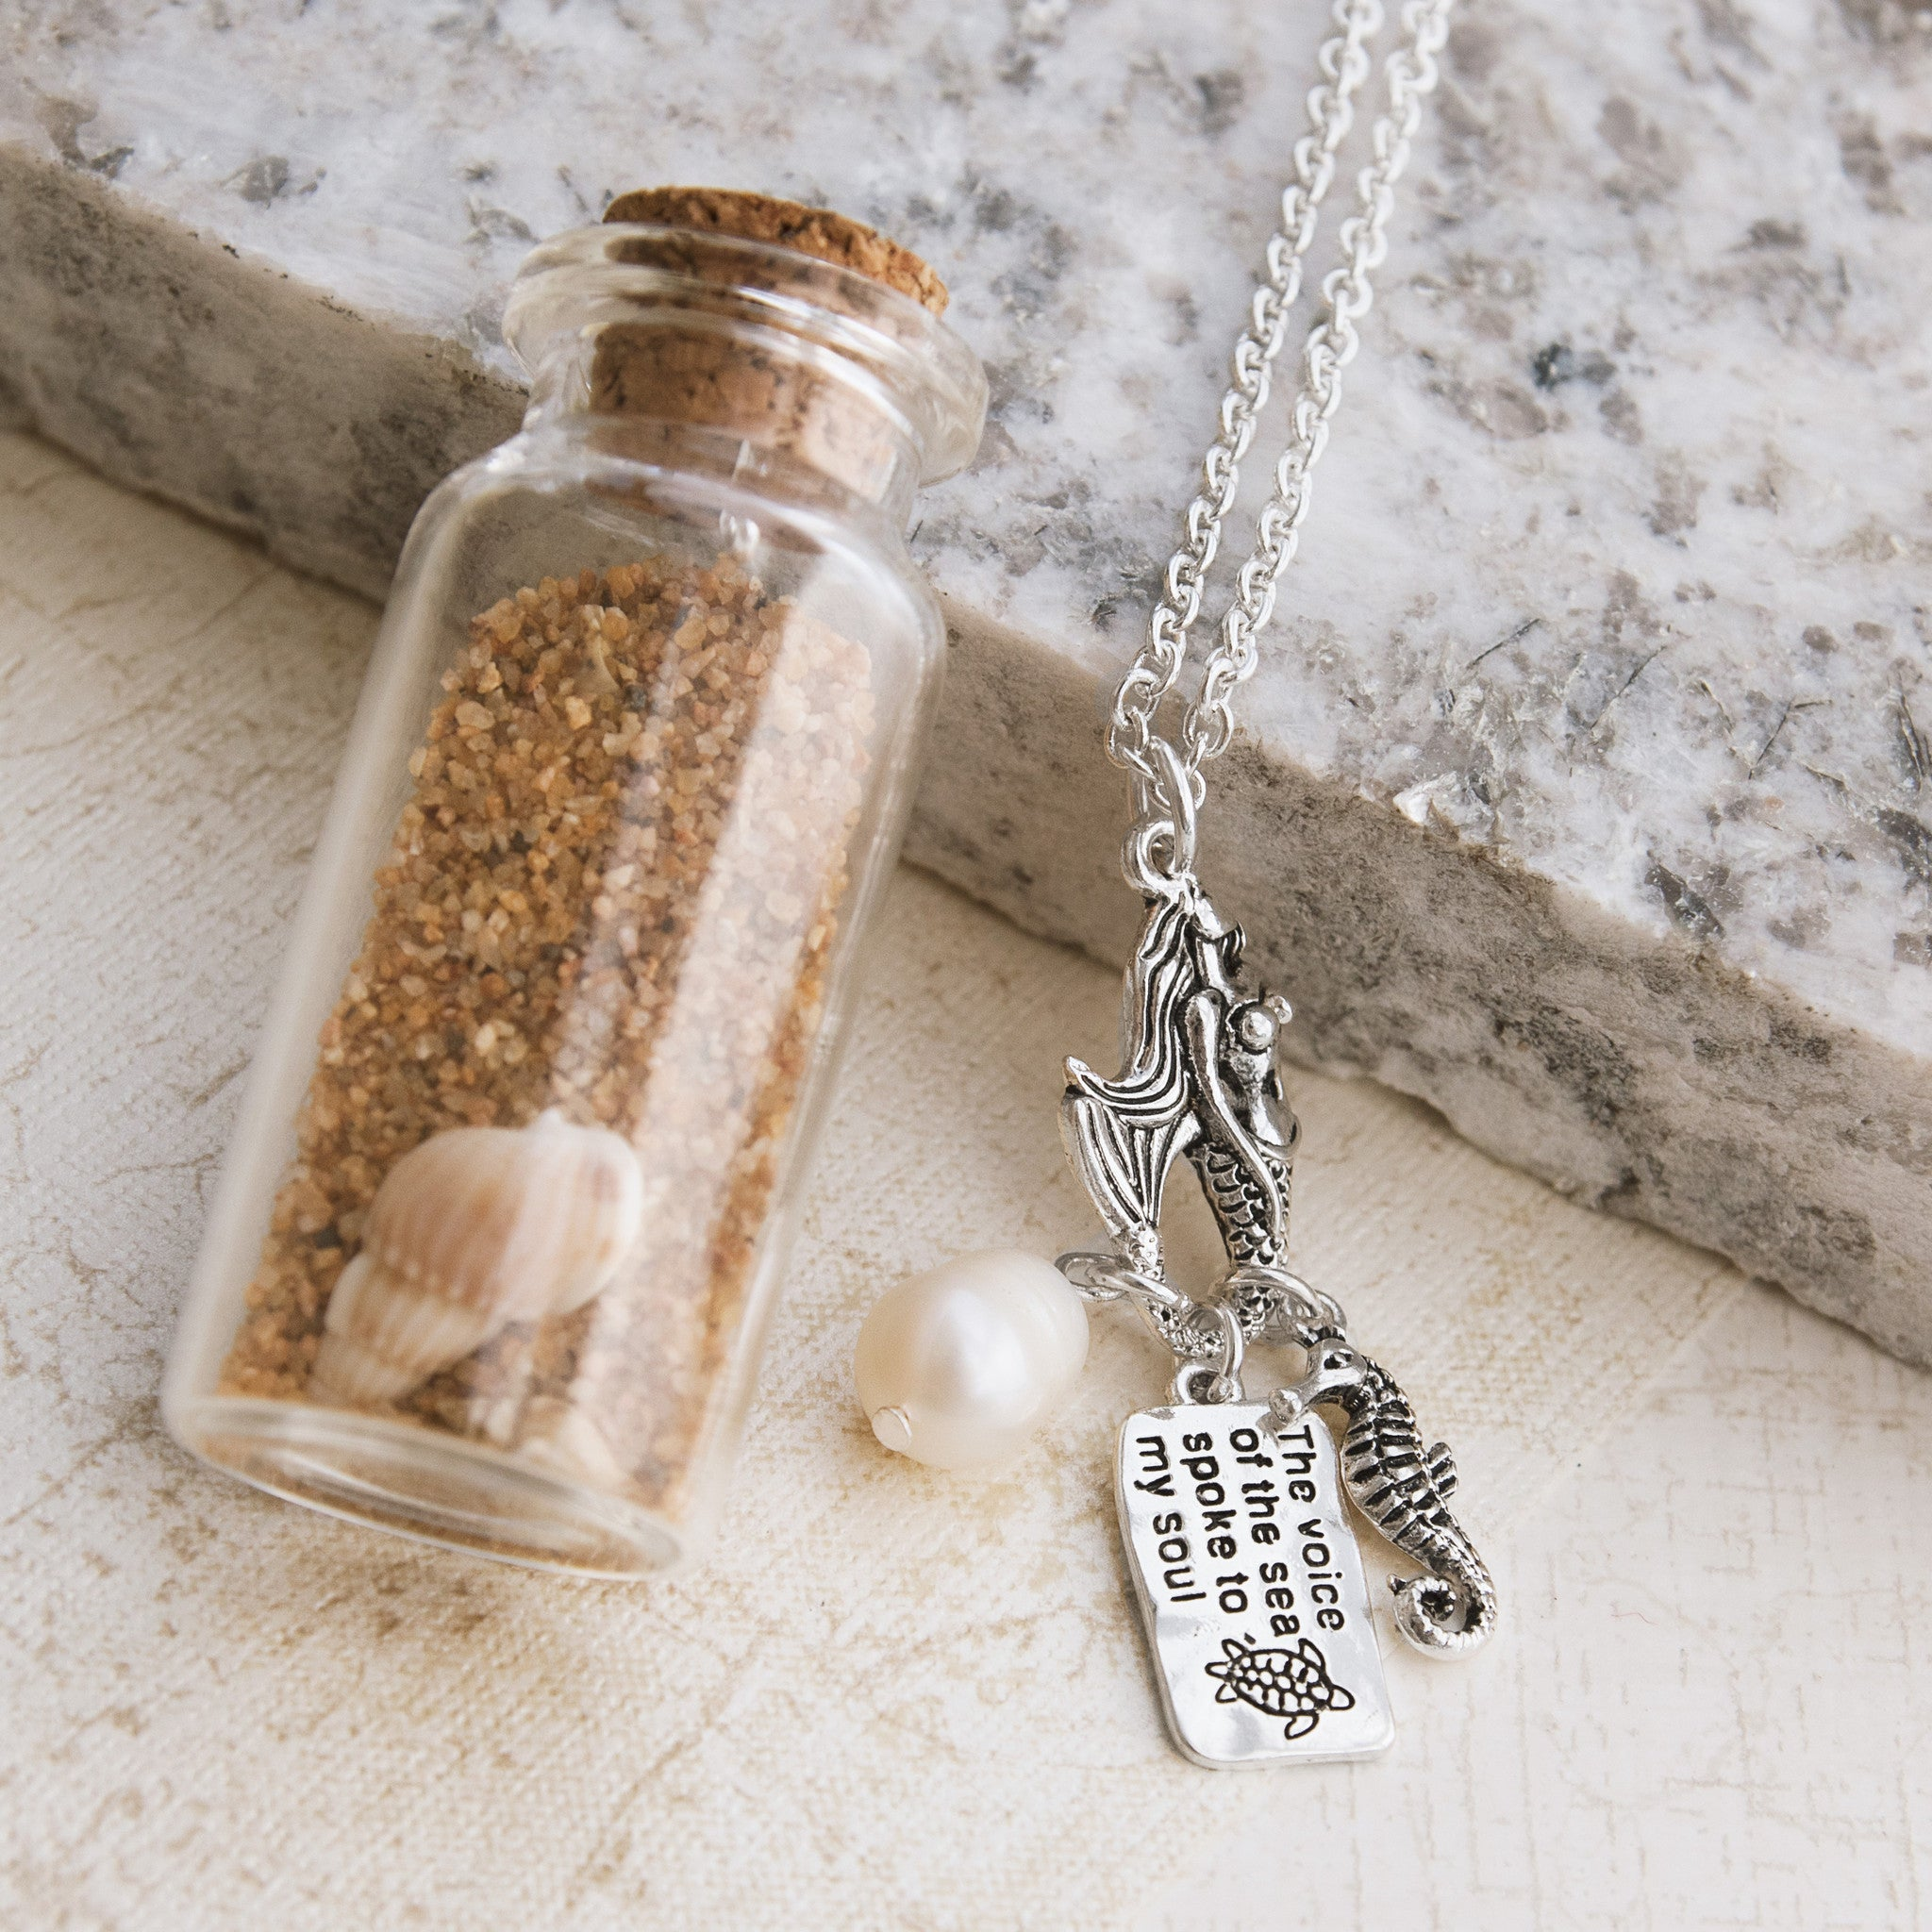 Mermaids and Seashells Necklace In a Jar